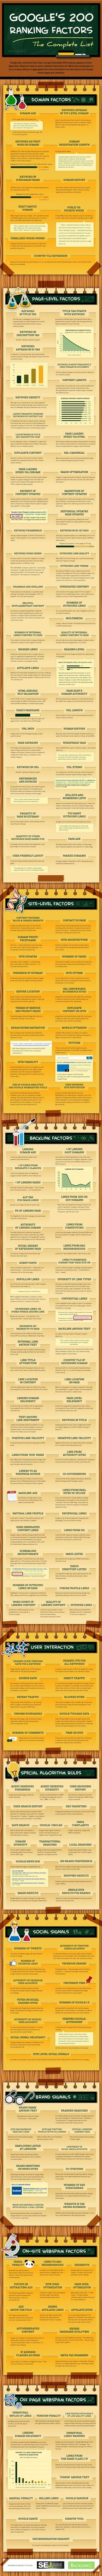 infographic googles 200 ranking factors